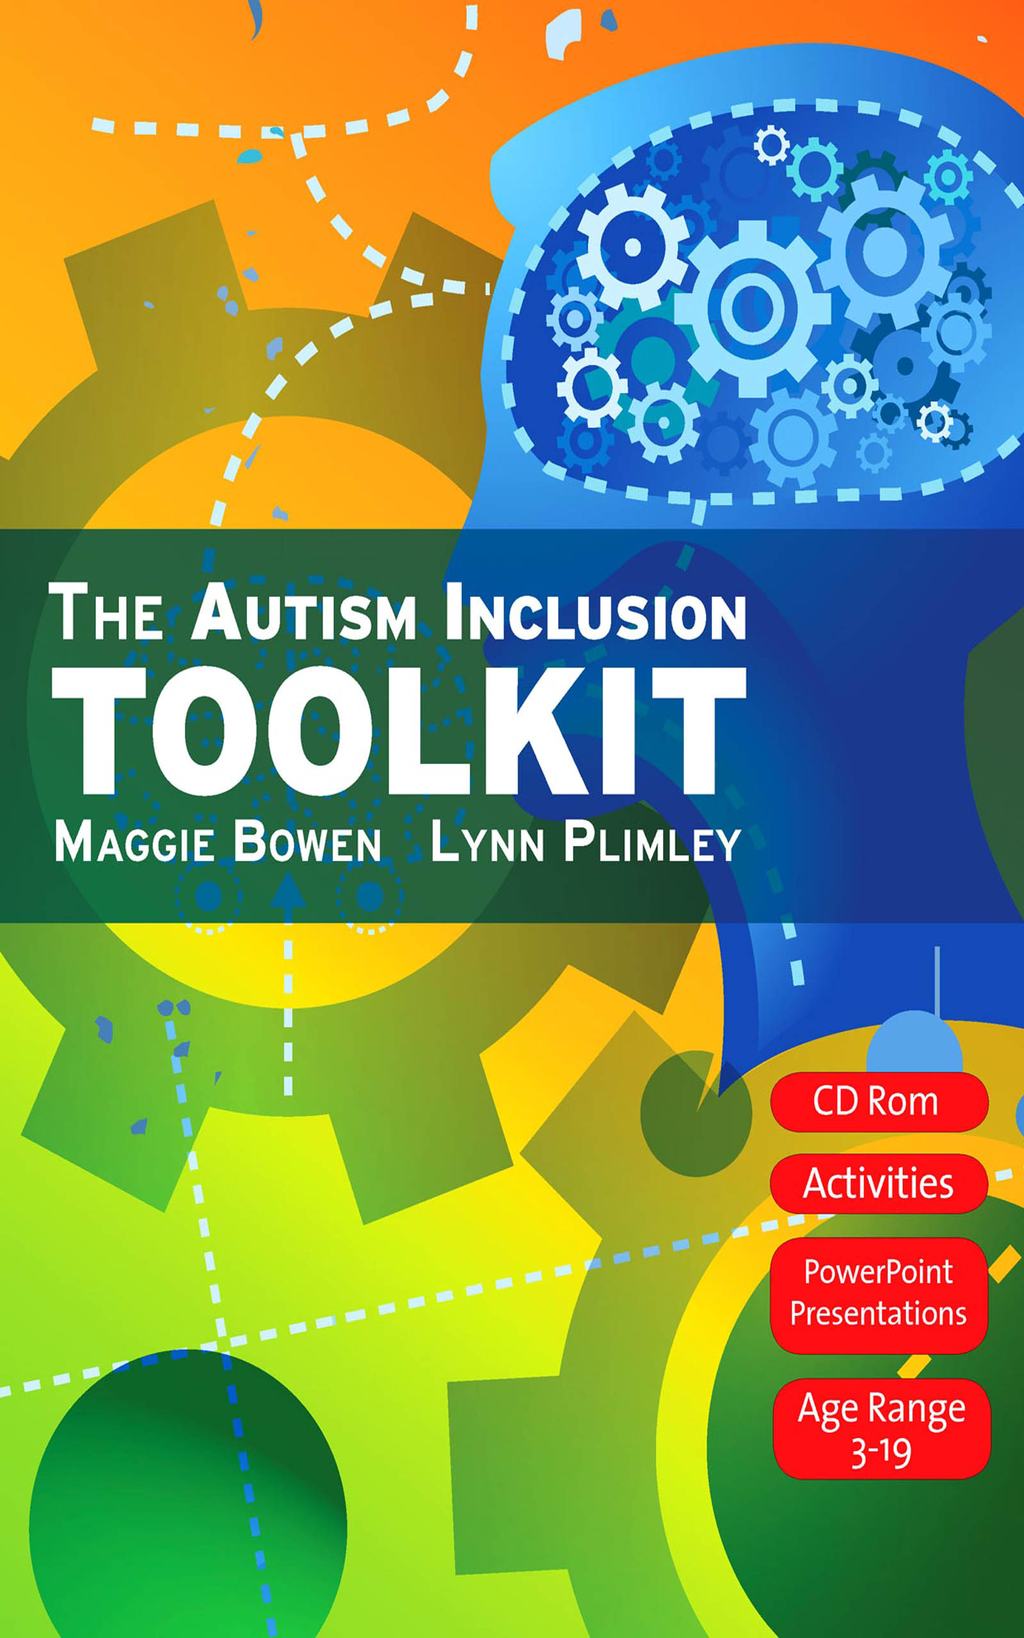 The Autism Inclusion Toolkit Training Materials and Facilitator Notes